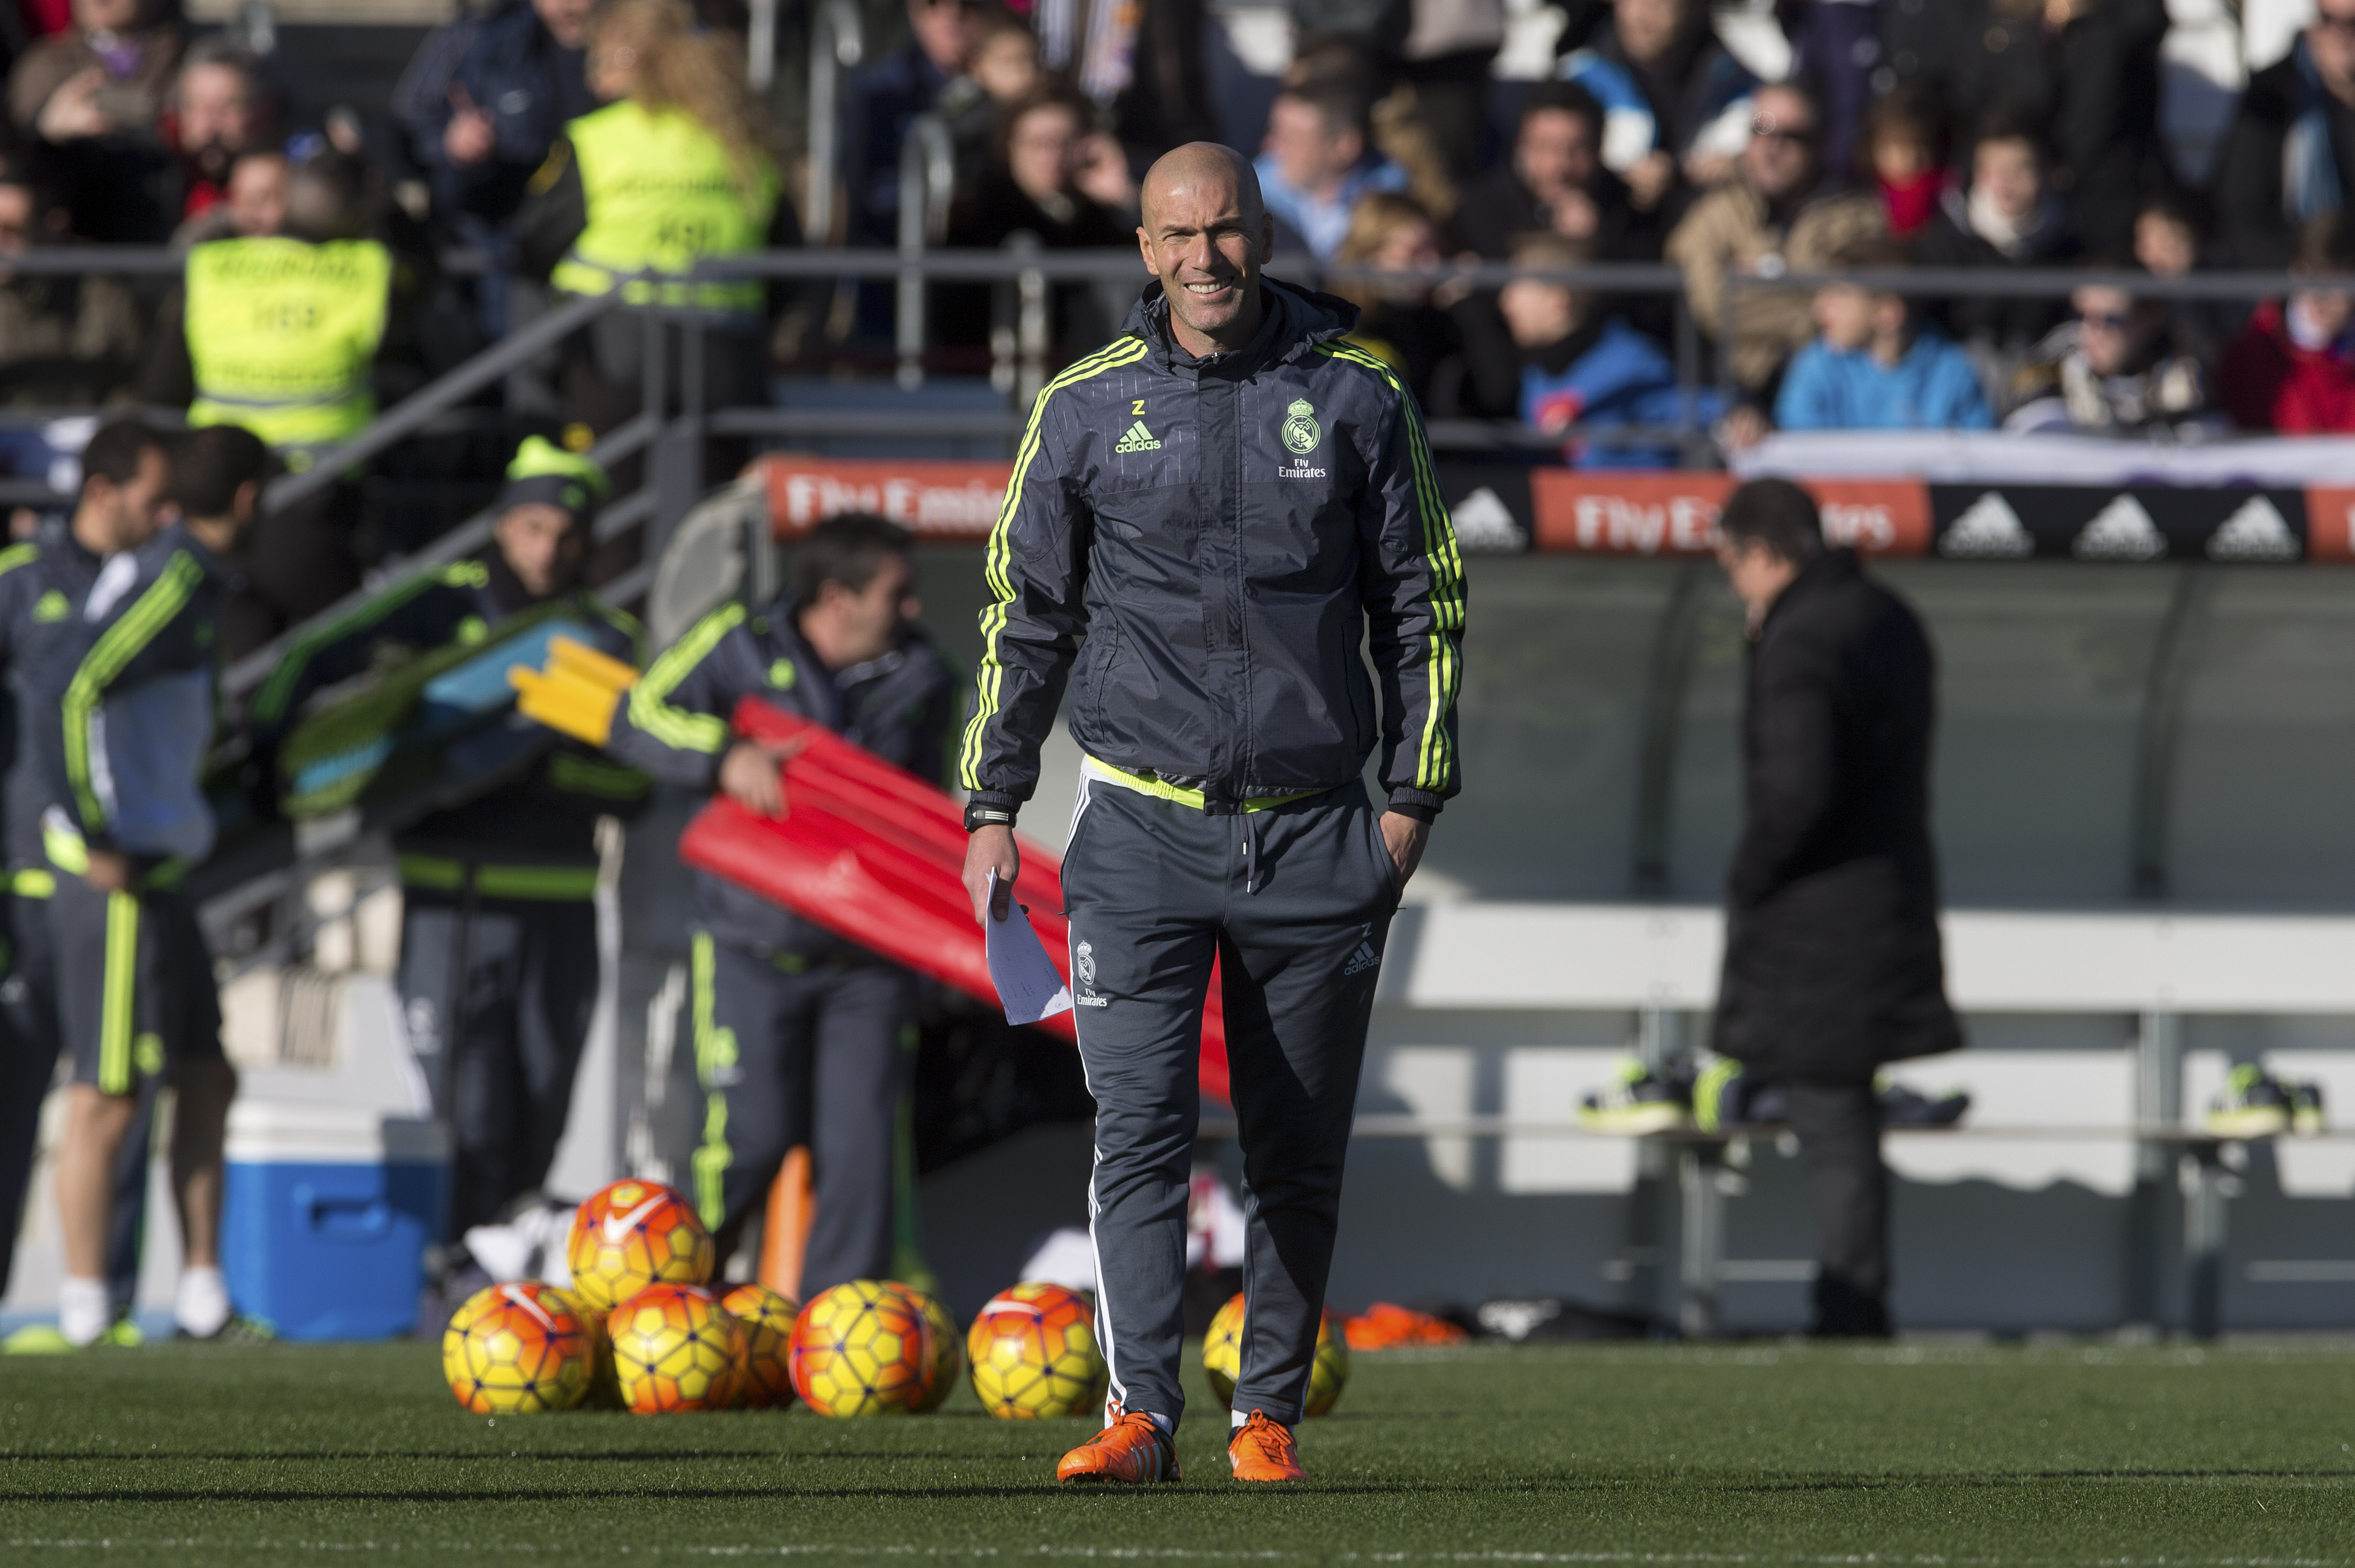 Real Madrid's newly appointed coach Zinedine Zidane steps out for his first training session in Madrid, Spain, Tuesday January 5, 2016. Photo: AP